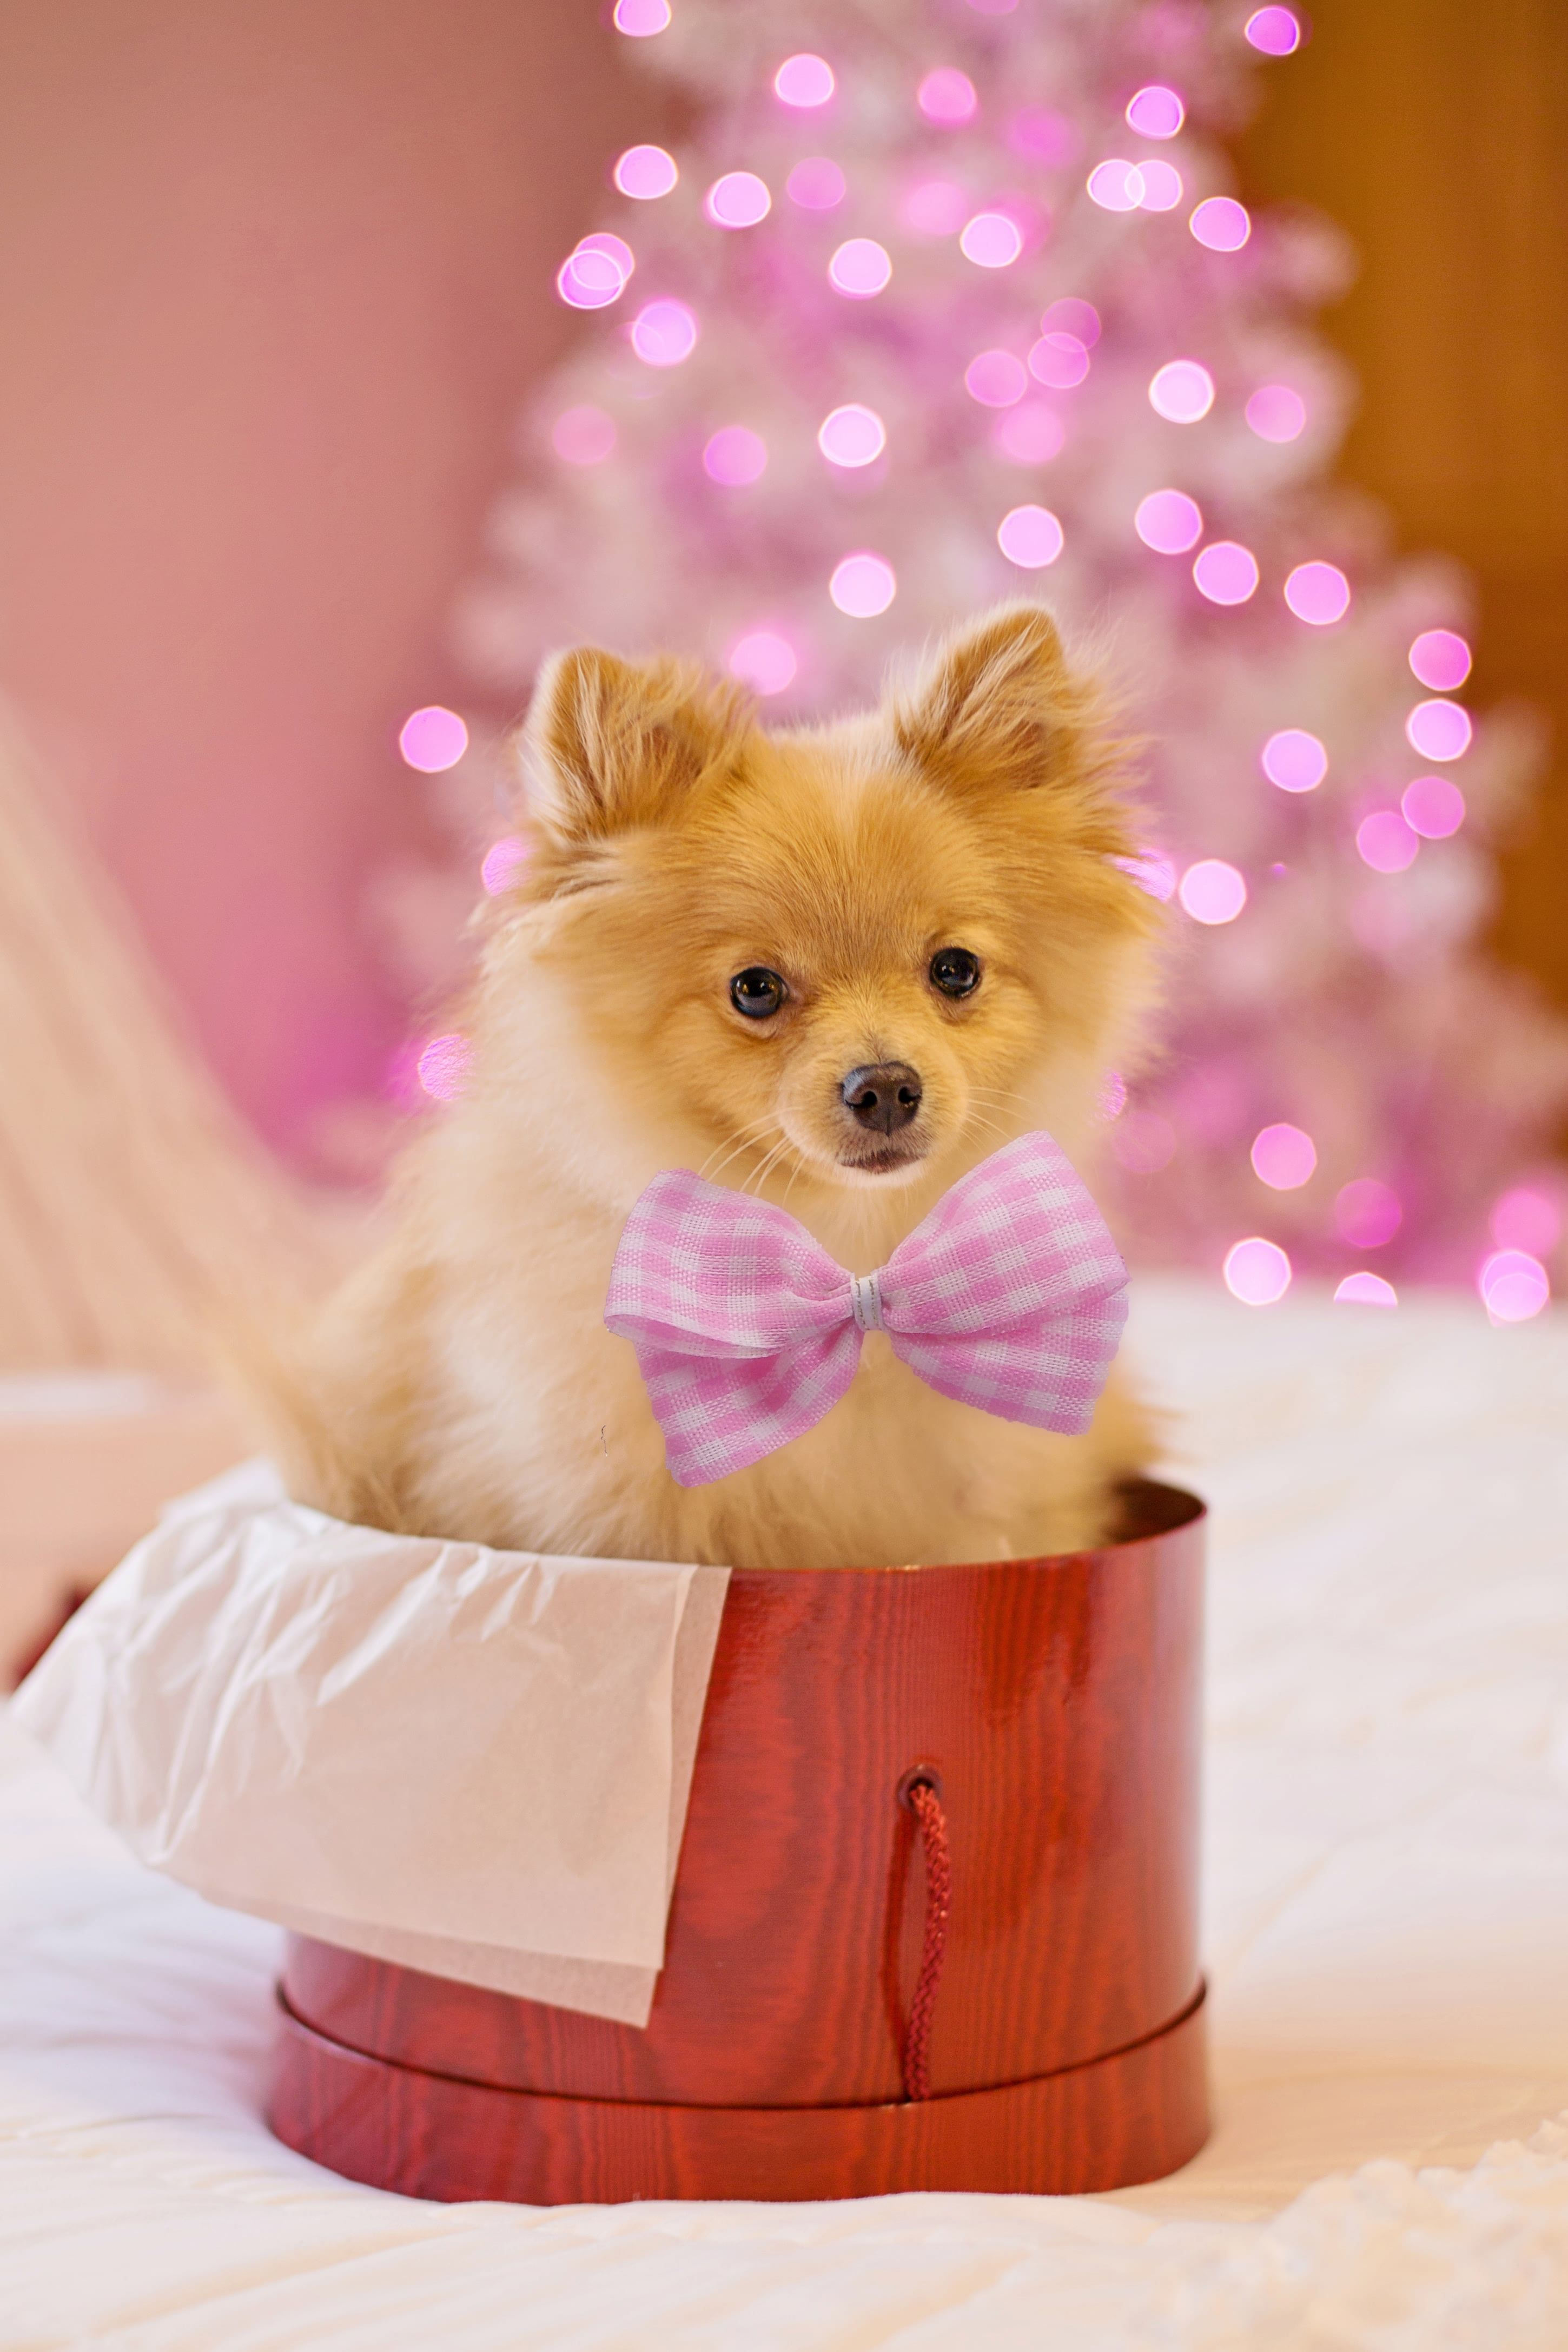 A Puppy Inside A Gift Box In 2020